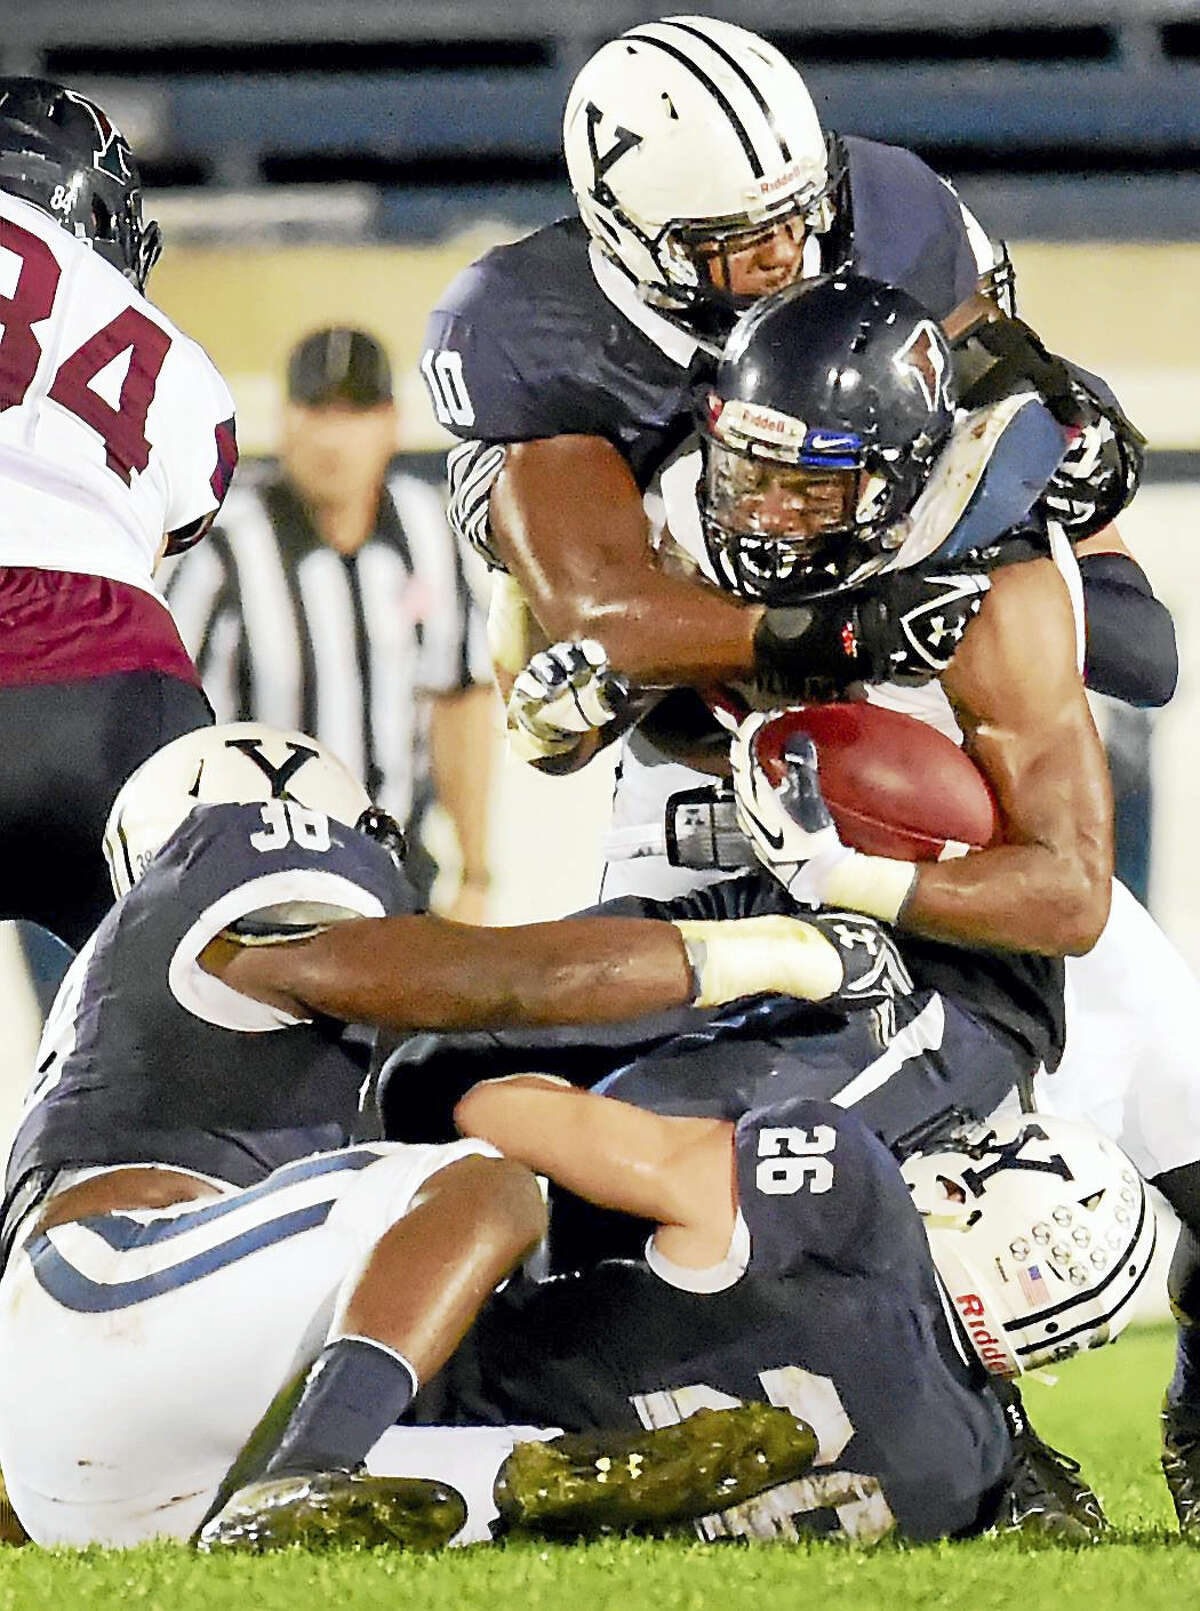 Yale linebacker Victor Egu of wraps up Penn running back Tre Solomon during their game last Friday.